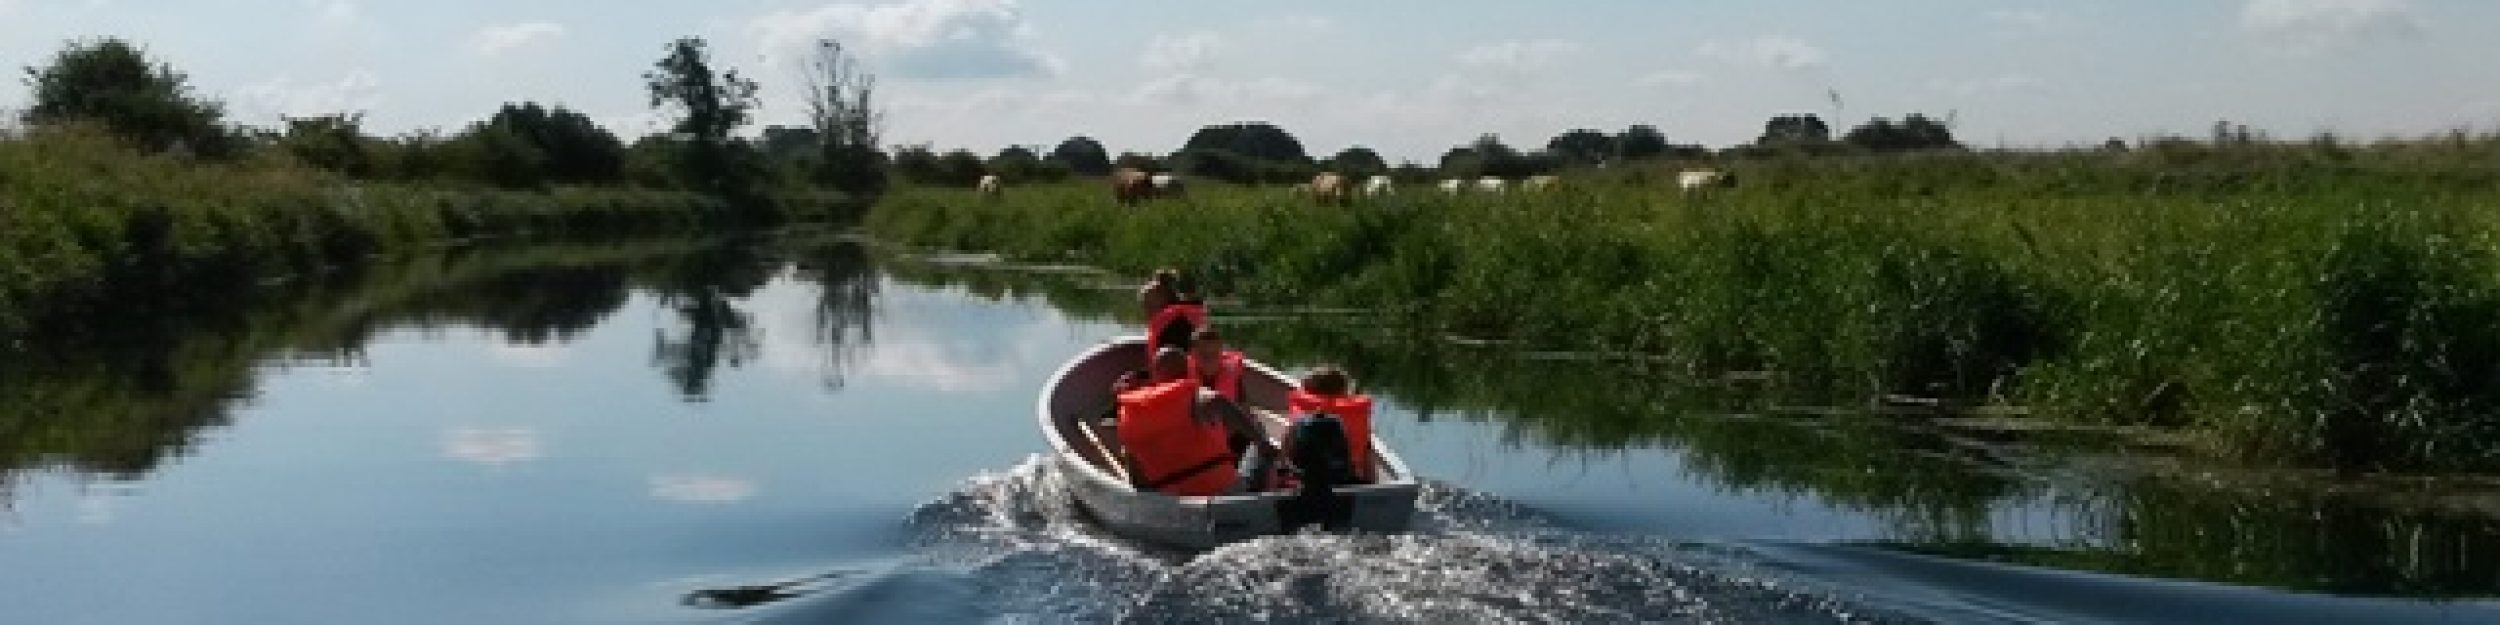 Beverley Boat Hire